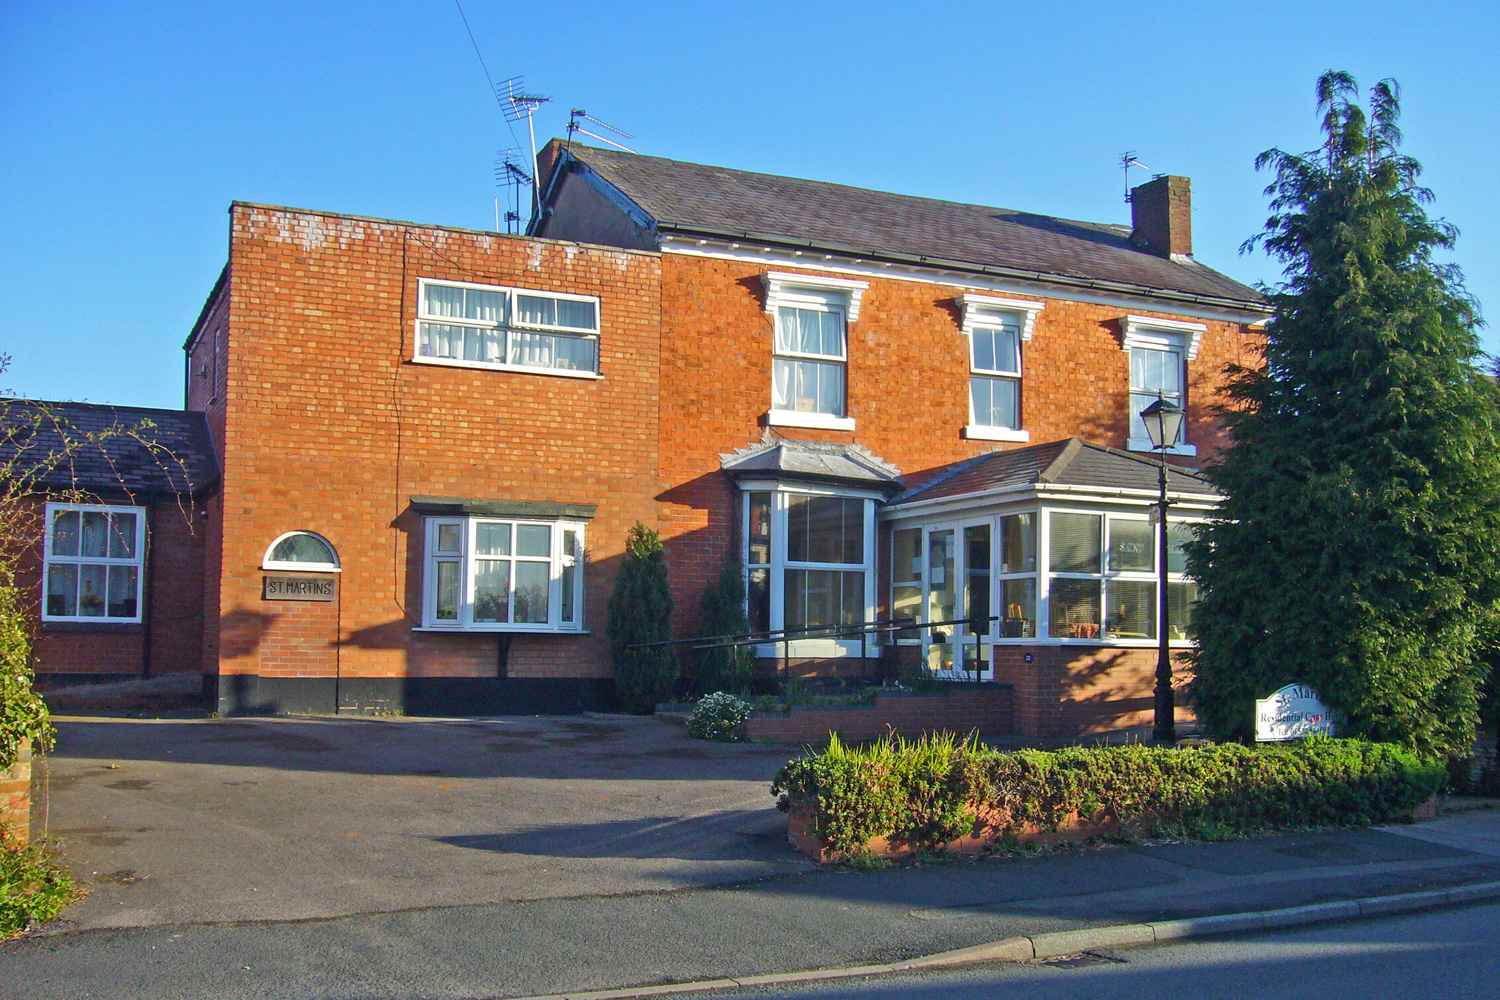 St. Martins Care Home for the Elderly